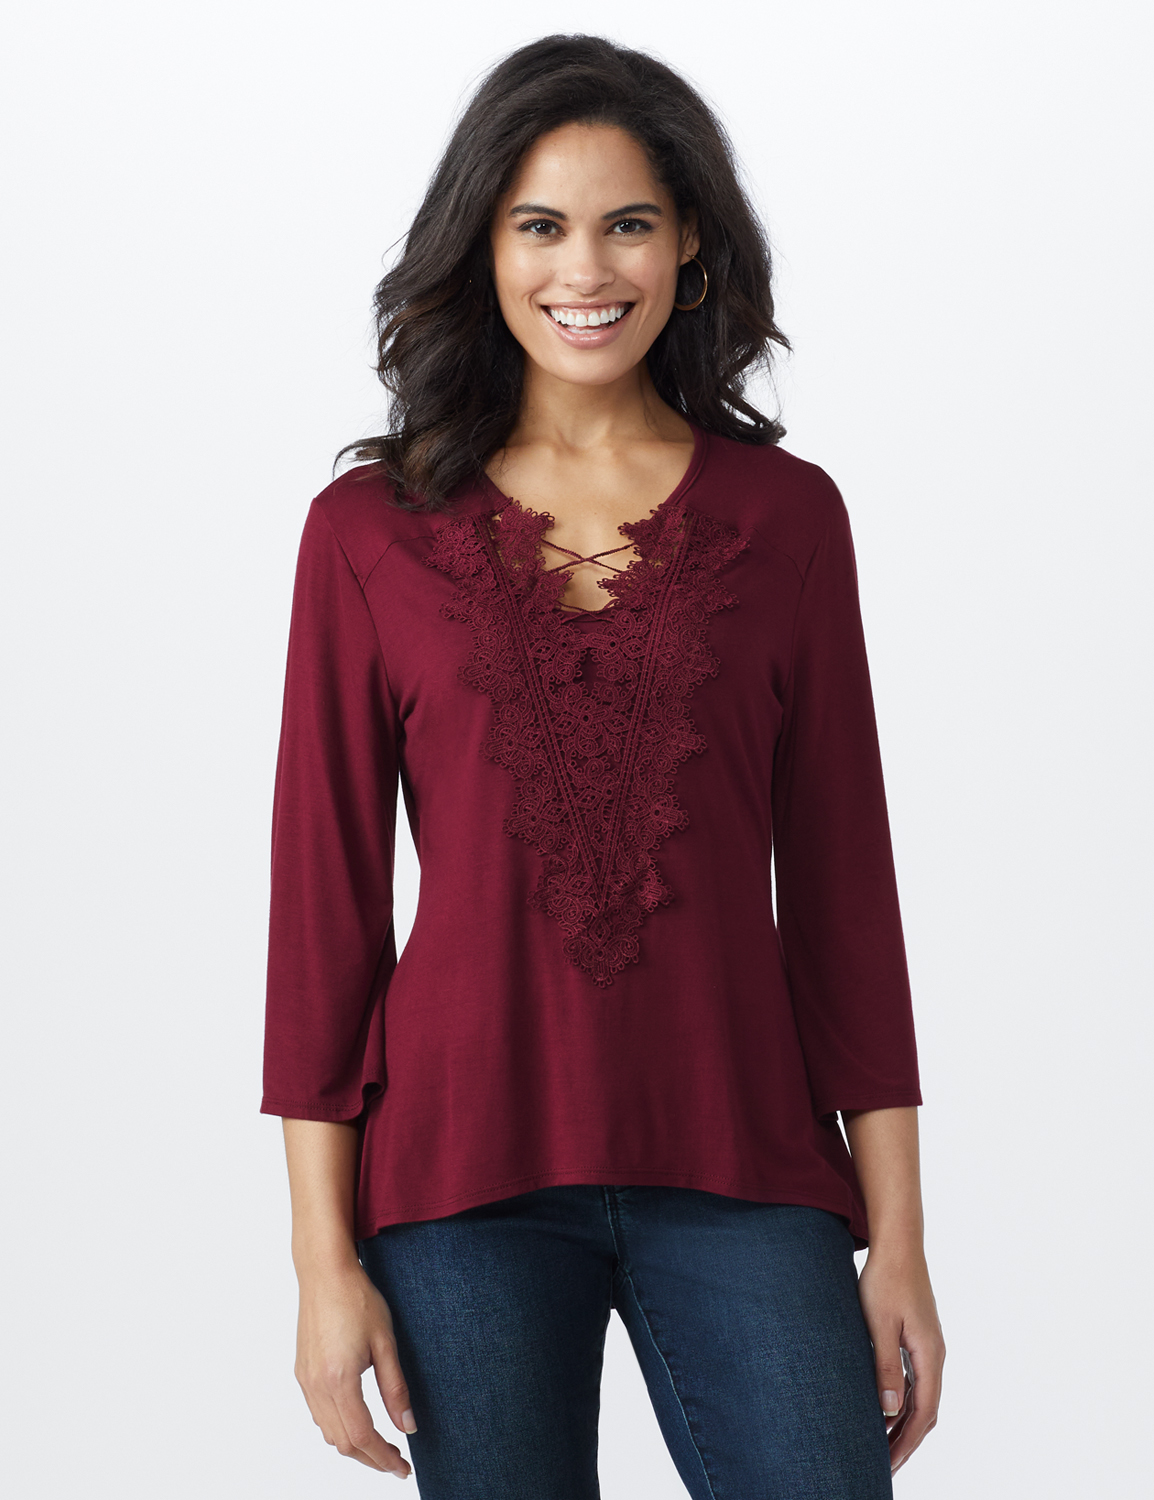 Bell Sleeve Crochet Trim V-Neck Knit Top - Misses -Ruby - Front